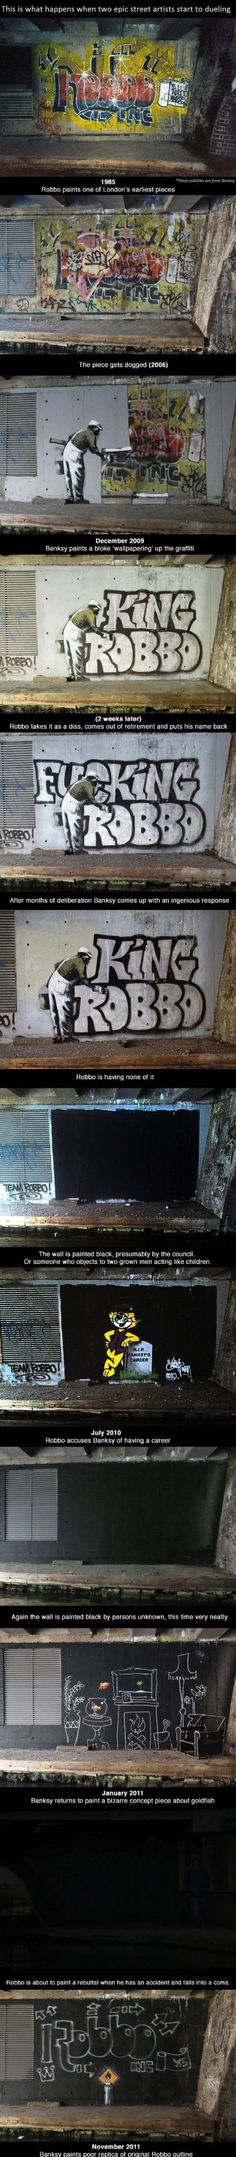 Banksy vs Robbo - Win Pictures | Webfail - Fail Pictures and Fail Videos